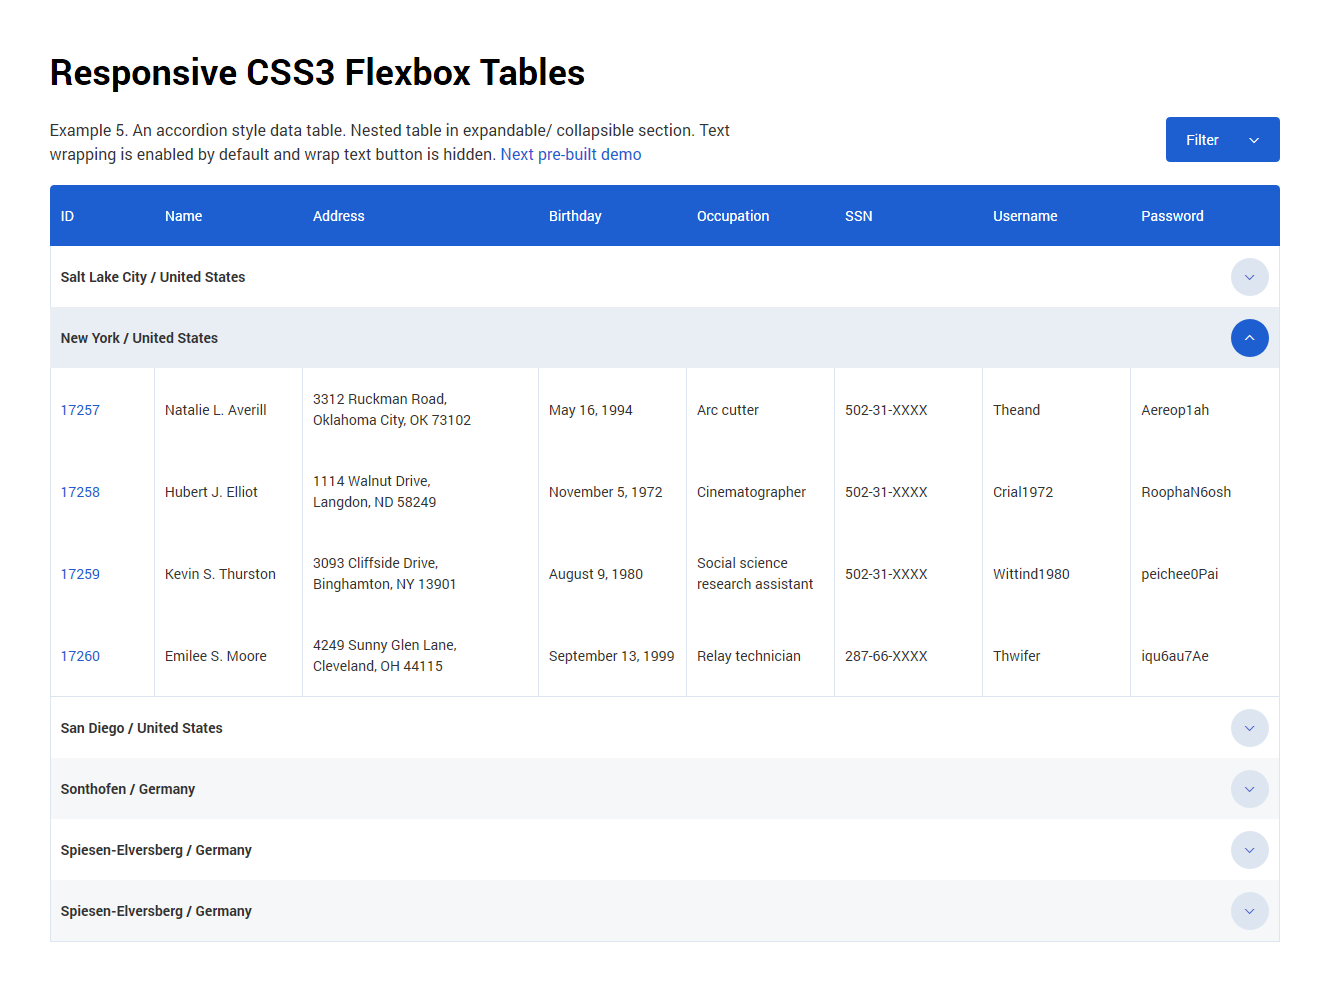 Responsive CSS3 Flexbox Tables